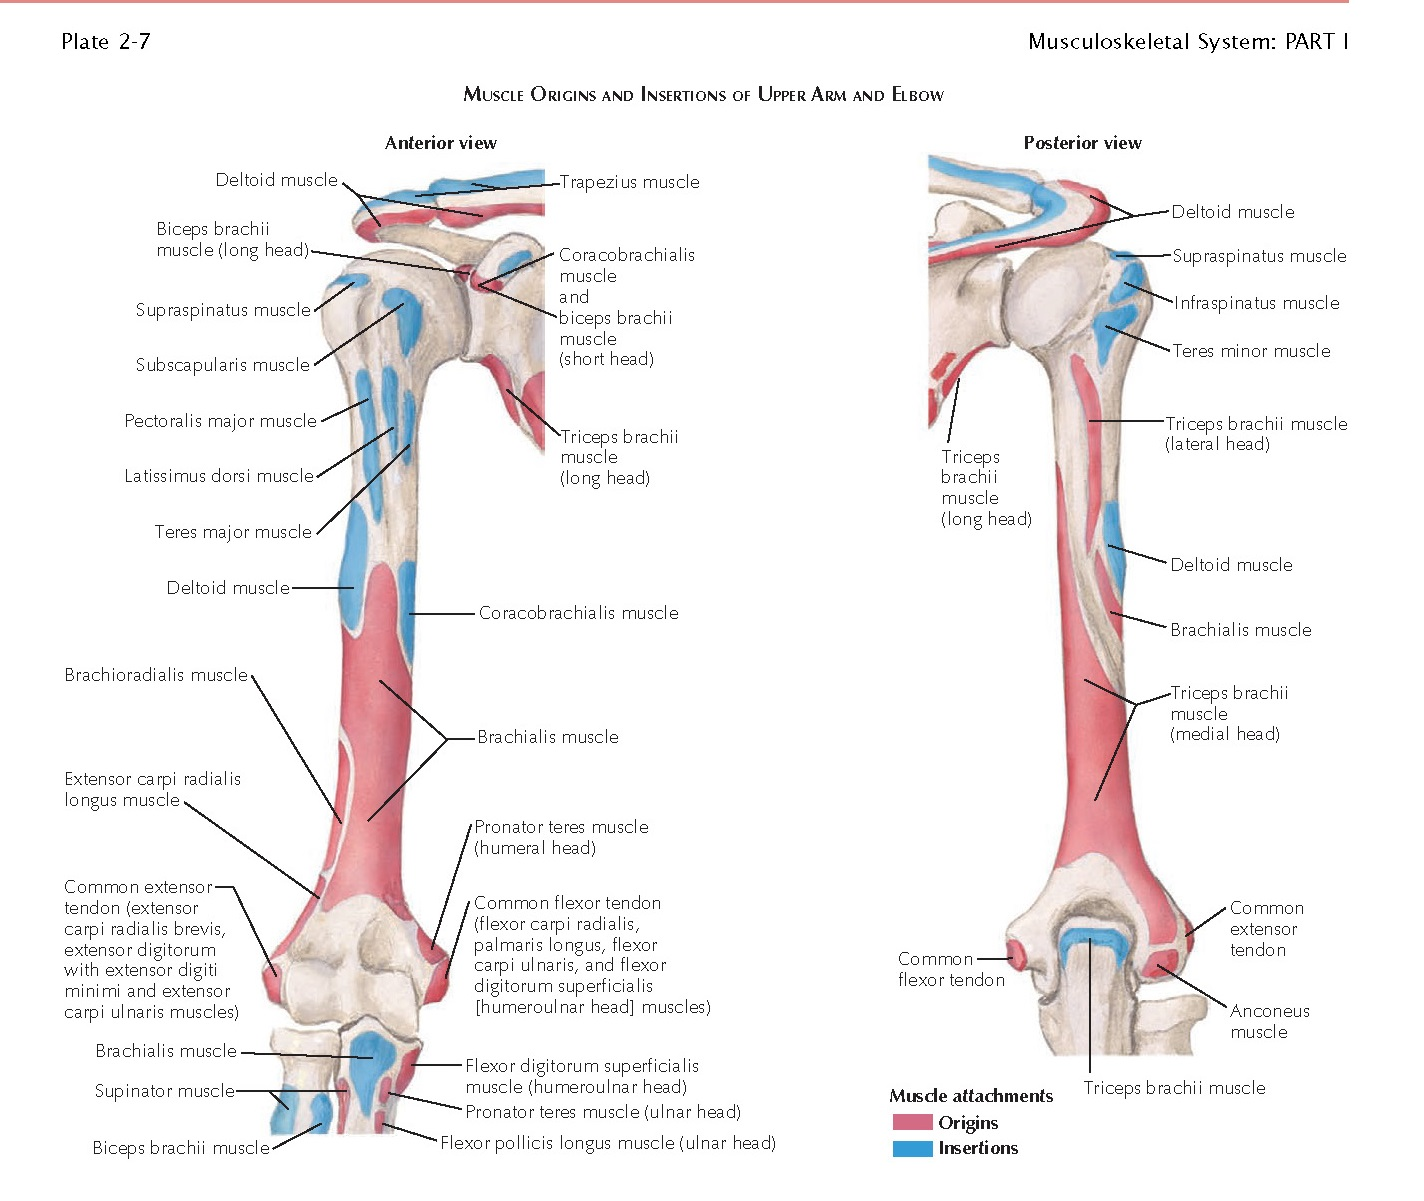 MUSCLES OF UPPER ARM AND ELBOW, Brachial Fascia, Muscles, Coracobrachialis Muscle, Biceps Brachii Muscle, Brachialis Muscle, Triceps Brachii Muscle, Anconeus Muscle, Muscle Actions